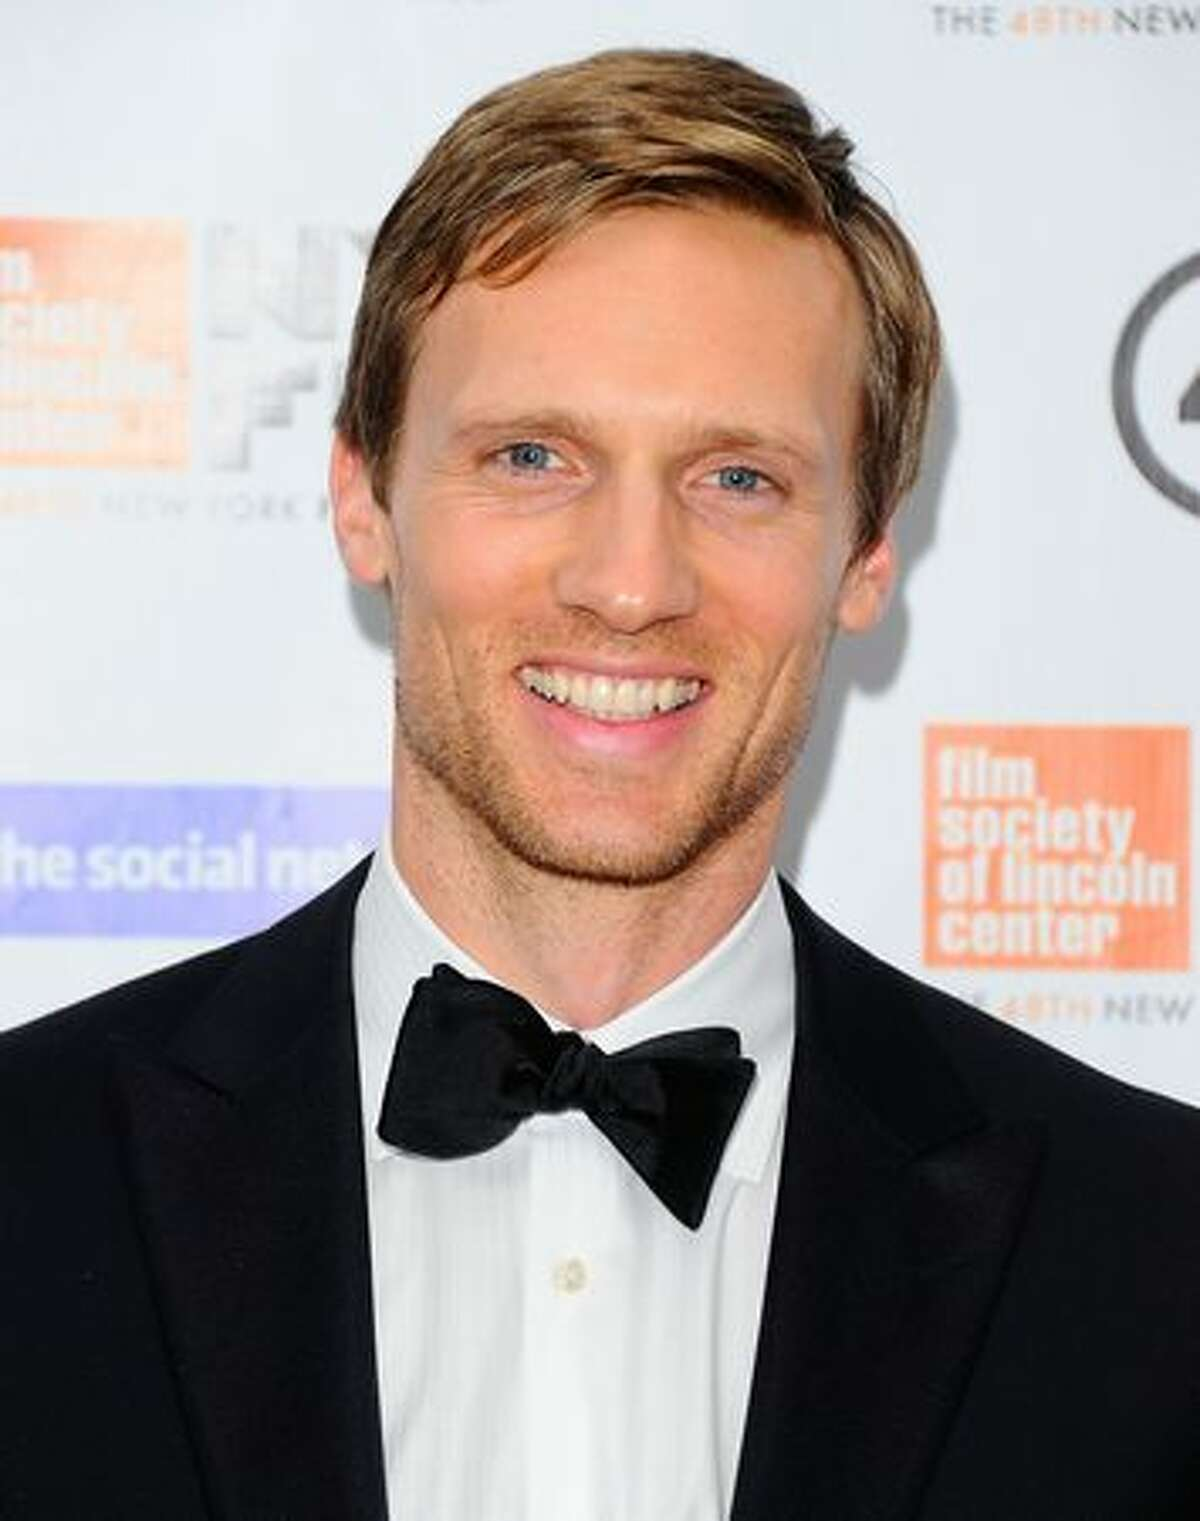 """Actor Teddy Sears attends the premiere of """"The Social Network"""" during the 48th New York Film Festival at Alice Tully Hall, Lincoln Center in New York City."""